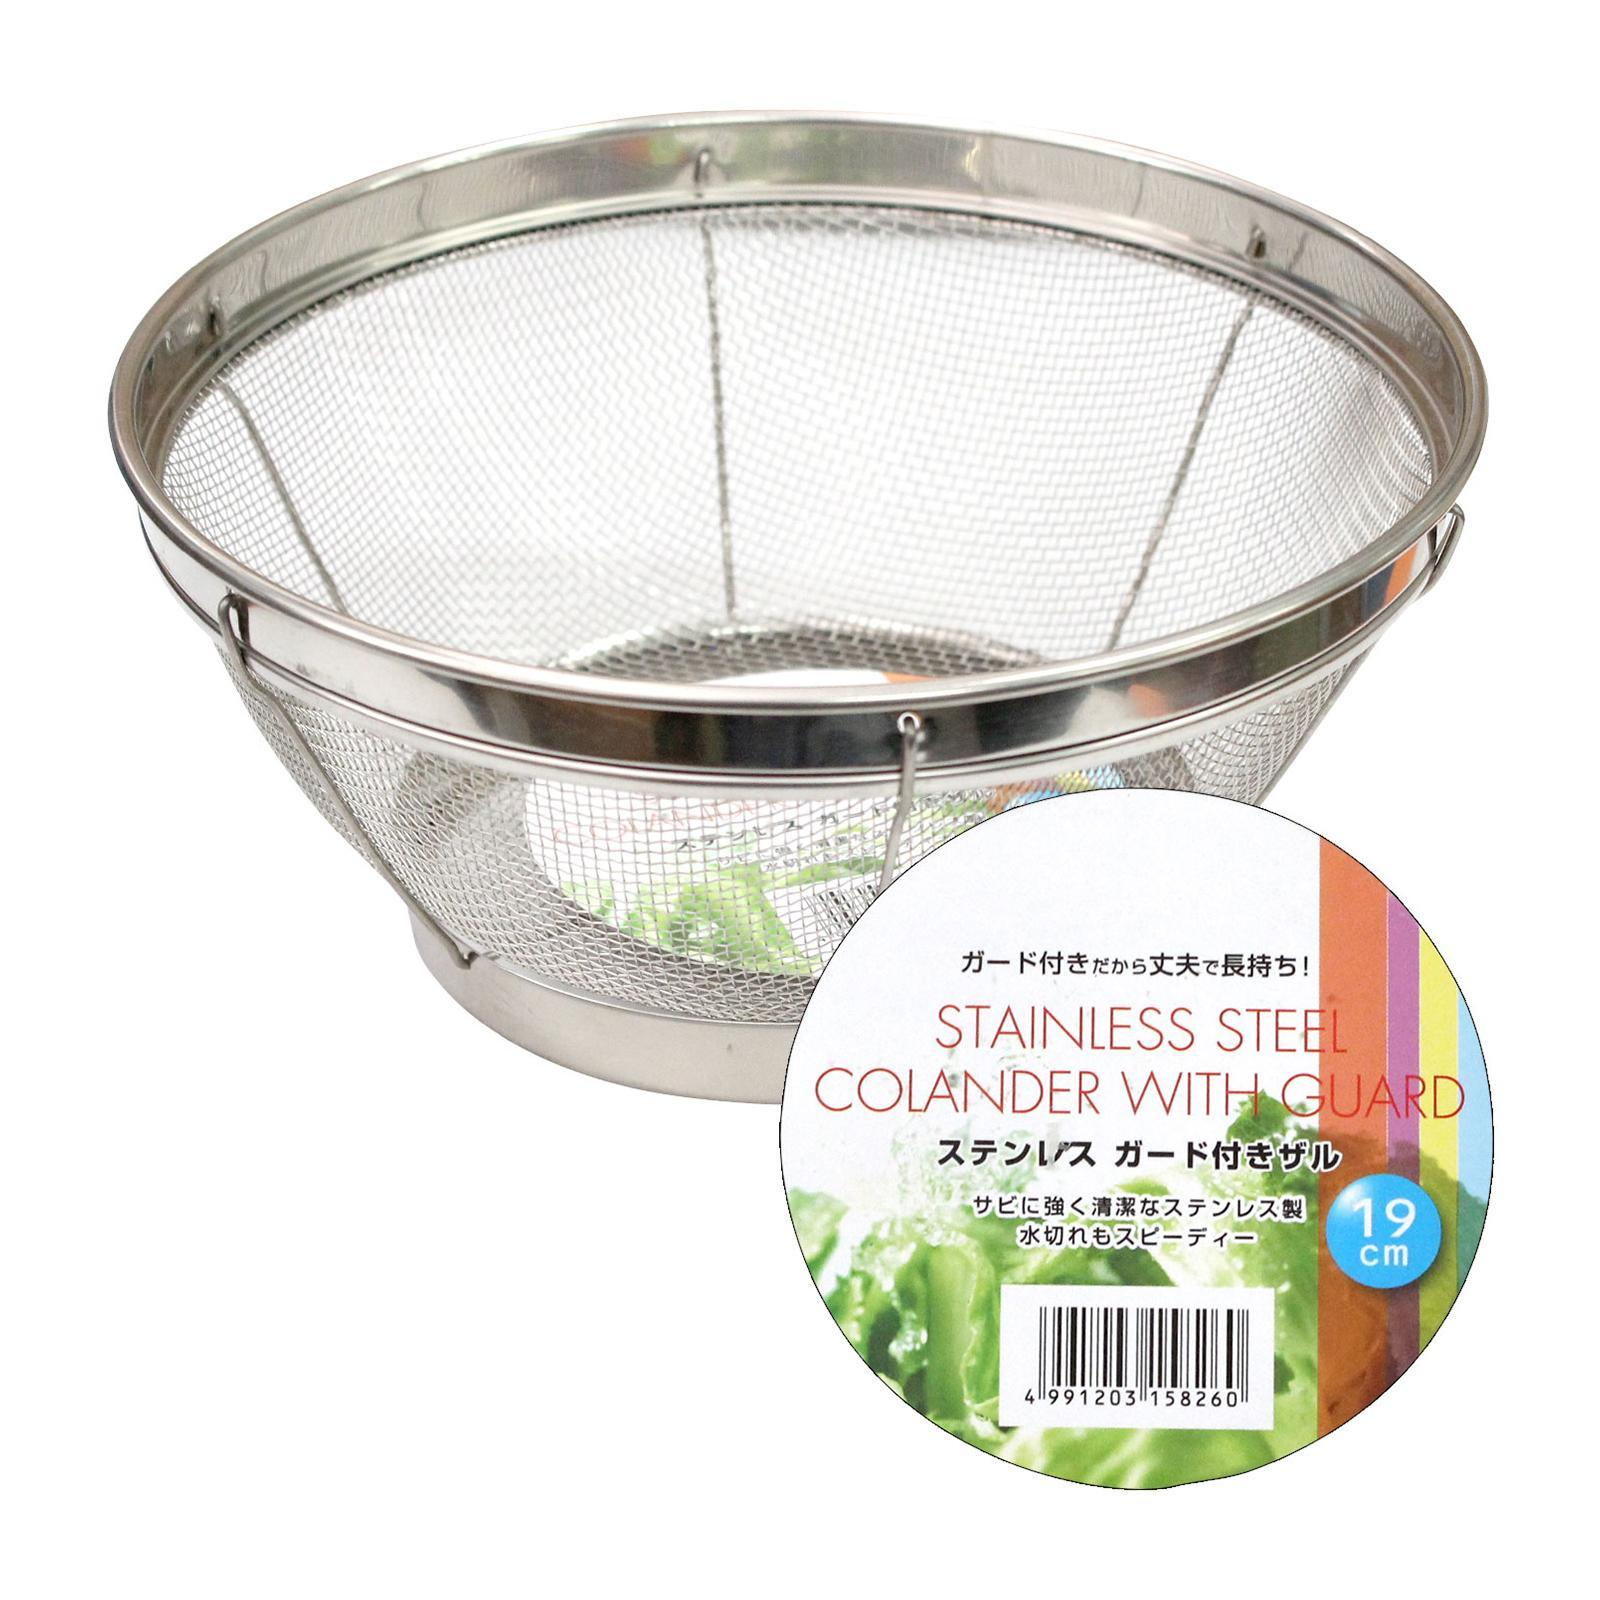 Echo Self- Draining Self- Standing Stainless Steel Colander Strainer With Guard And Base - Dia.19 CM